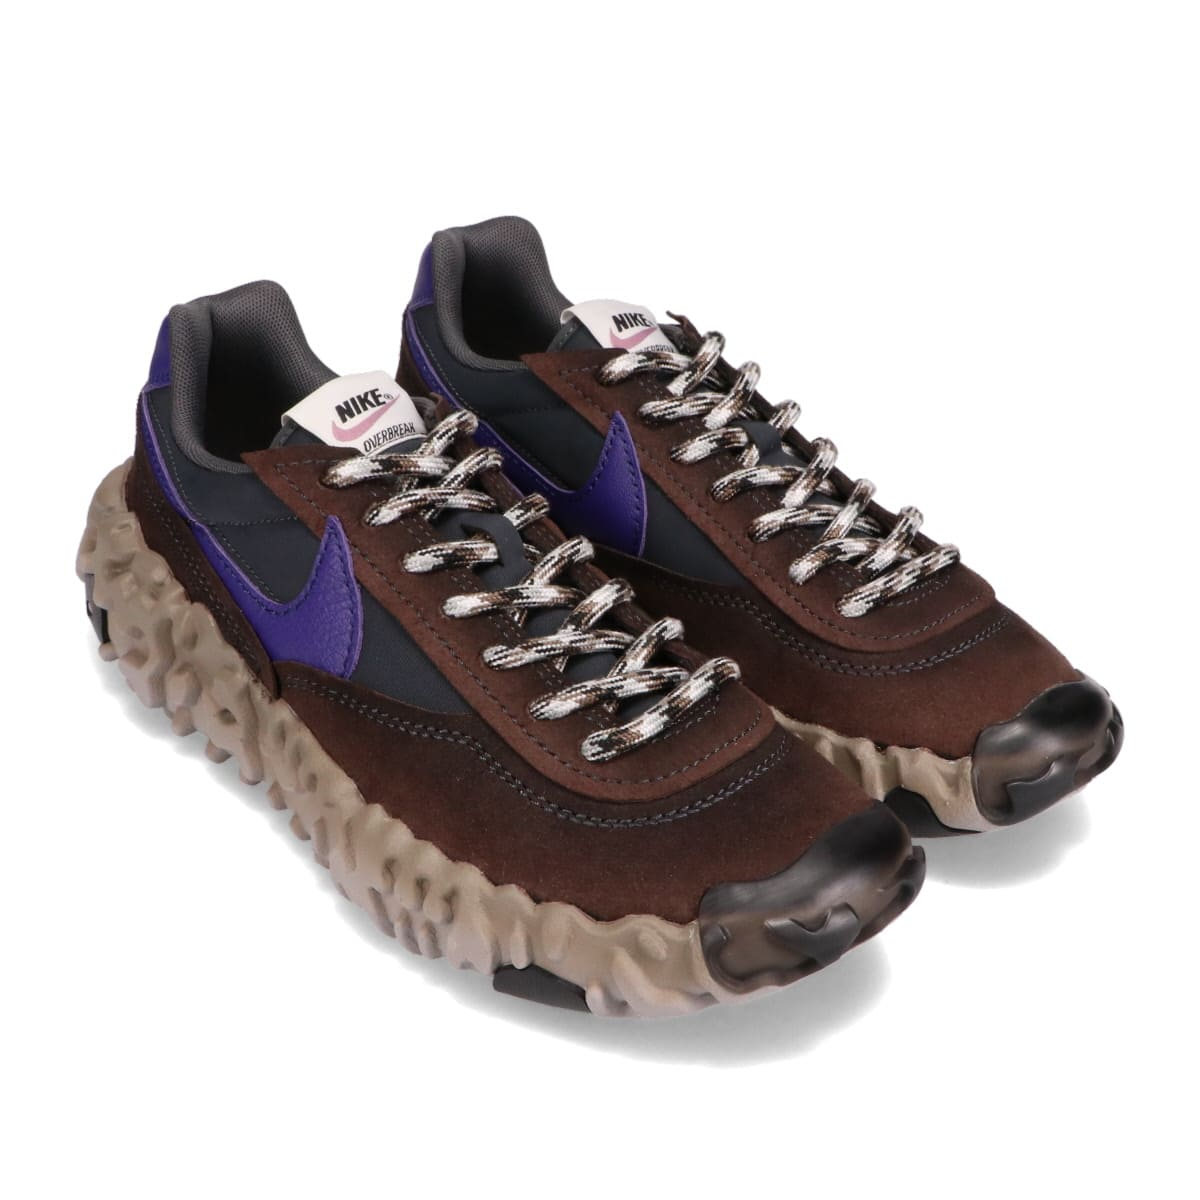 NIKE OVERBREAK SP BAROQUE BROWN/NEW ORCHID-BLACK 20HO-S_photo_large